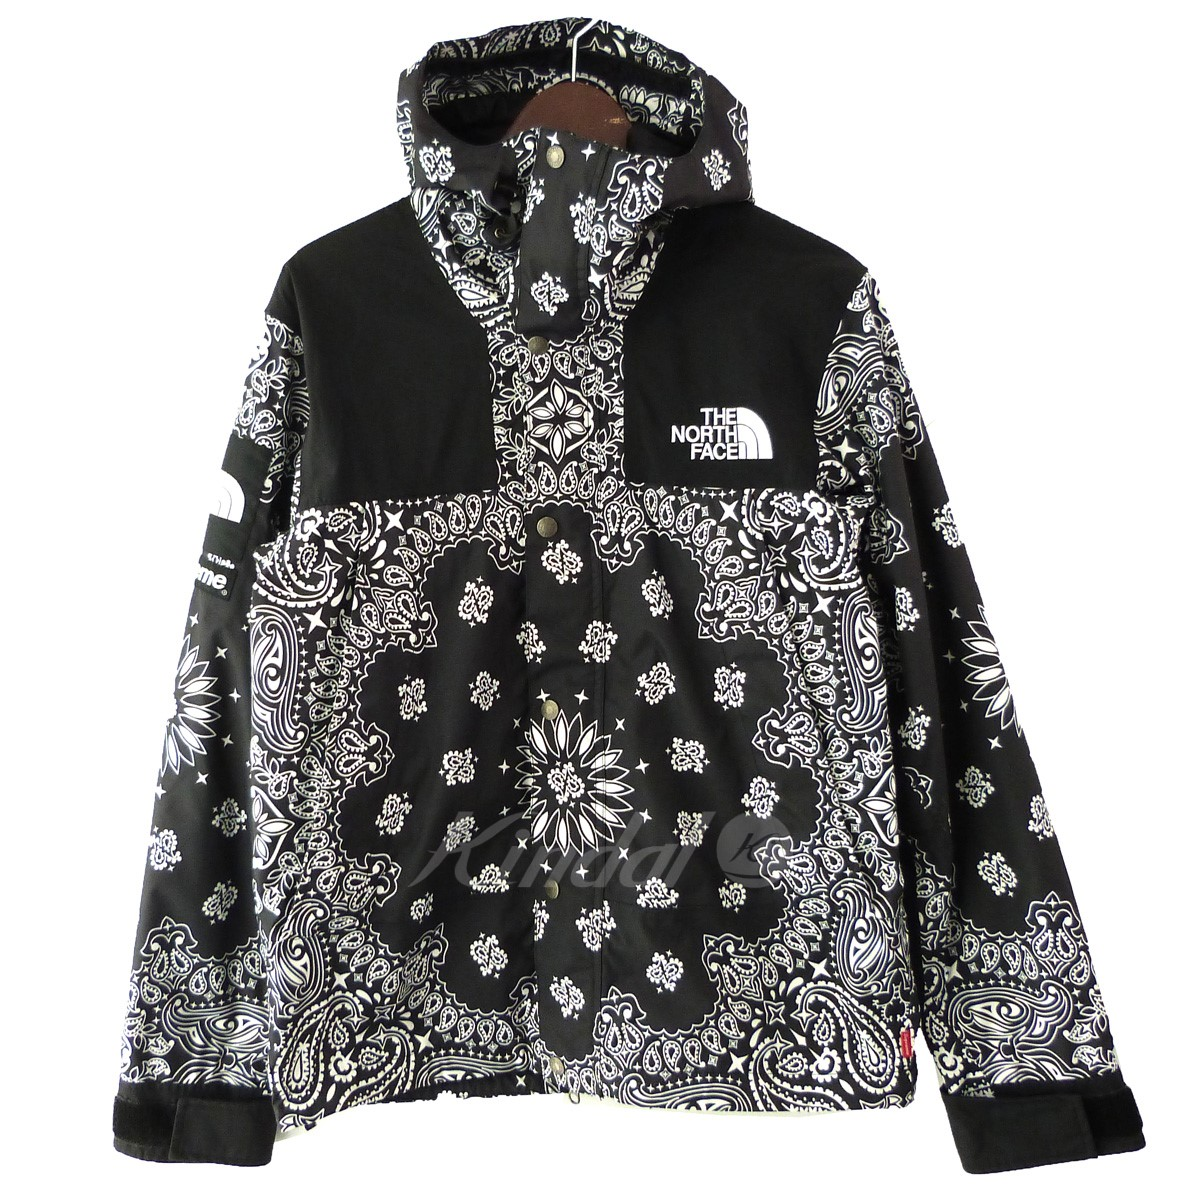 【中古】Supreme×THE NORTH FACE 14AW 「Bandana Mountain Parka」バンダナマウンテンパーカー 【送料無料】 【153836】 【KIND1550】